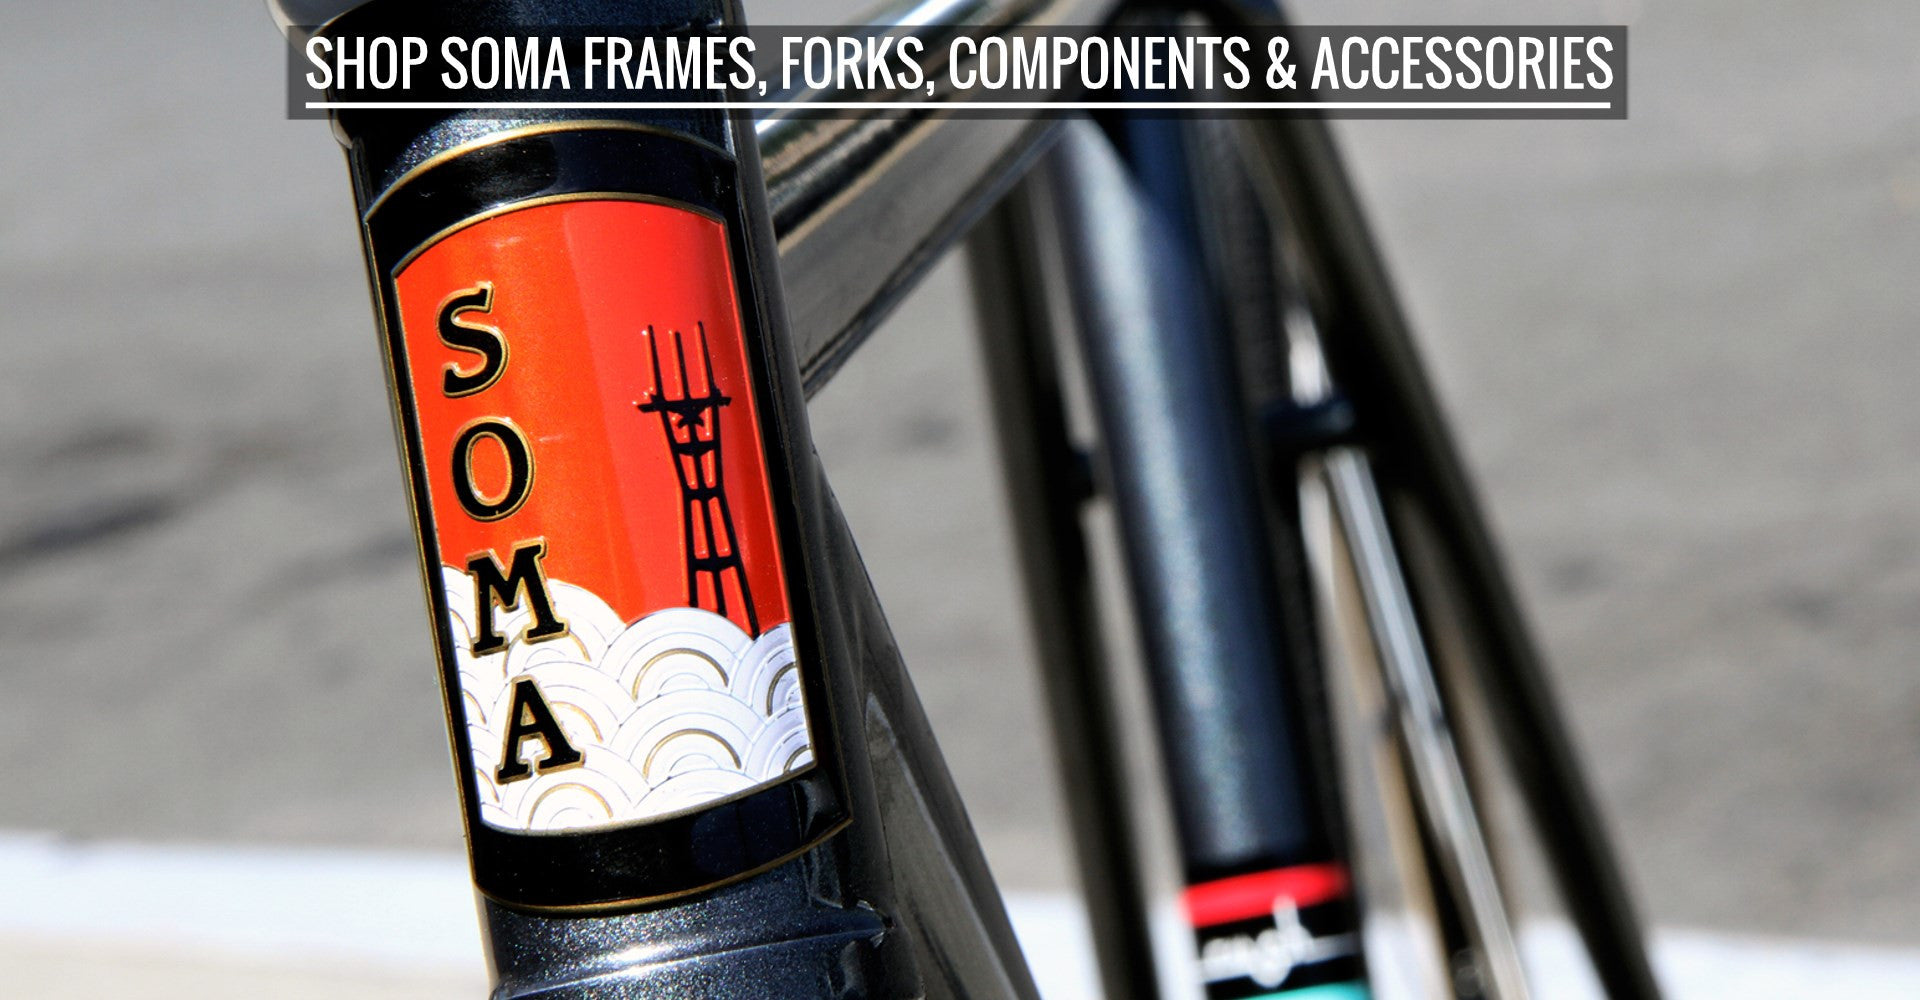 Shop Soma products now!